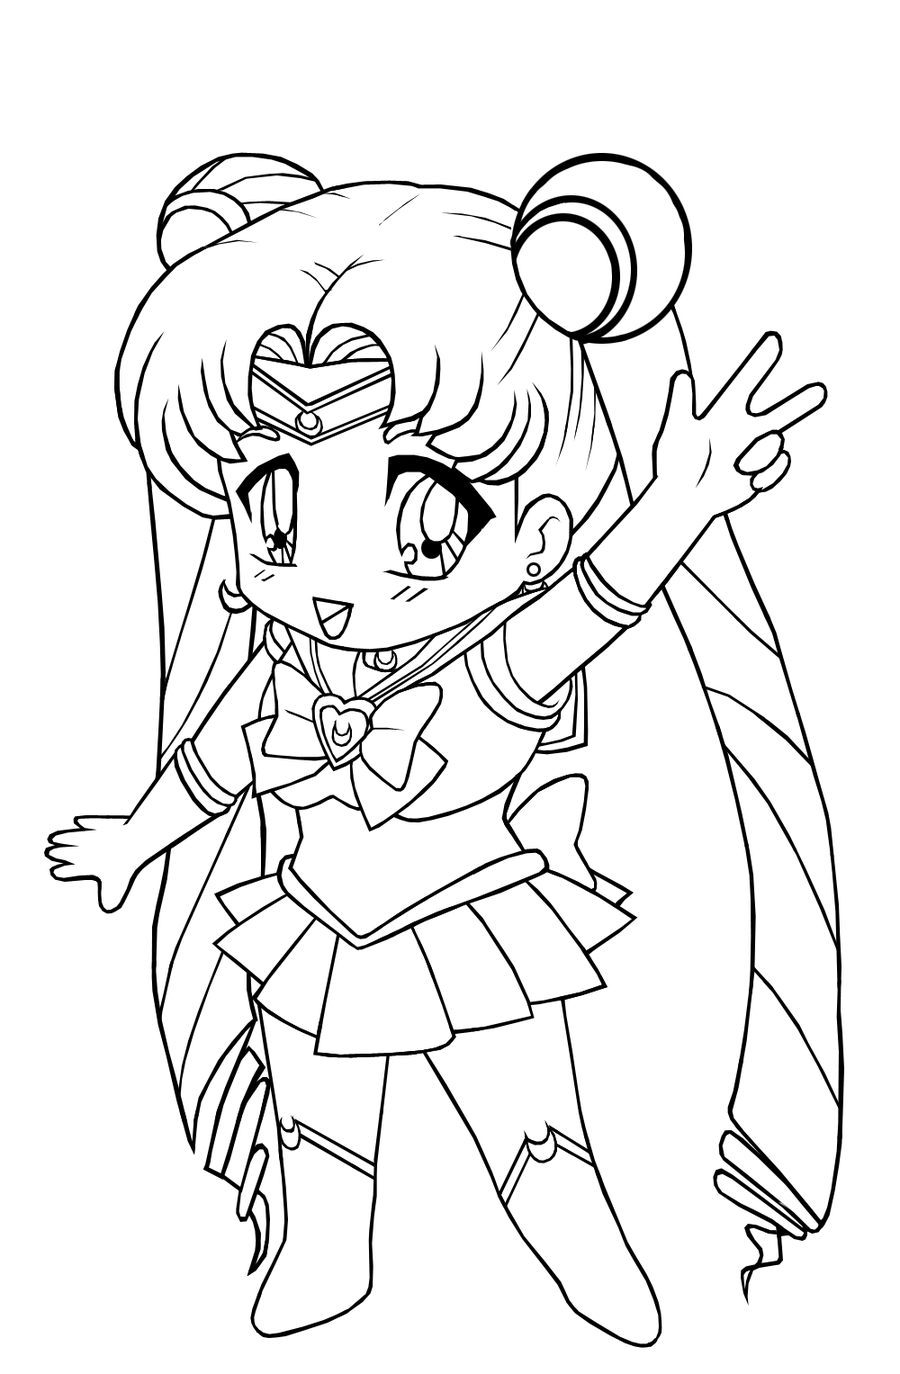 printable coloring pages for teenagers free printable fairy coloring pages for kids pages printable coloring teenagers for